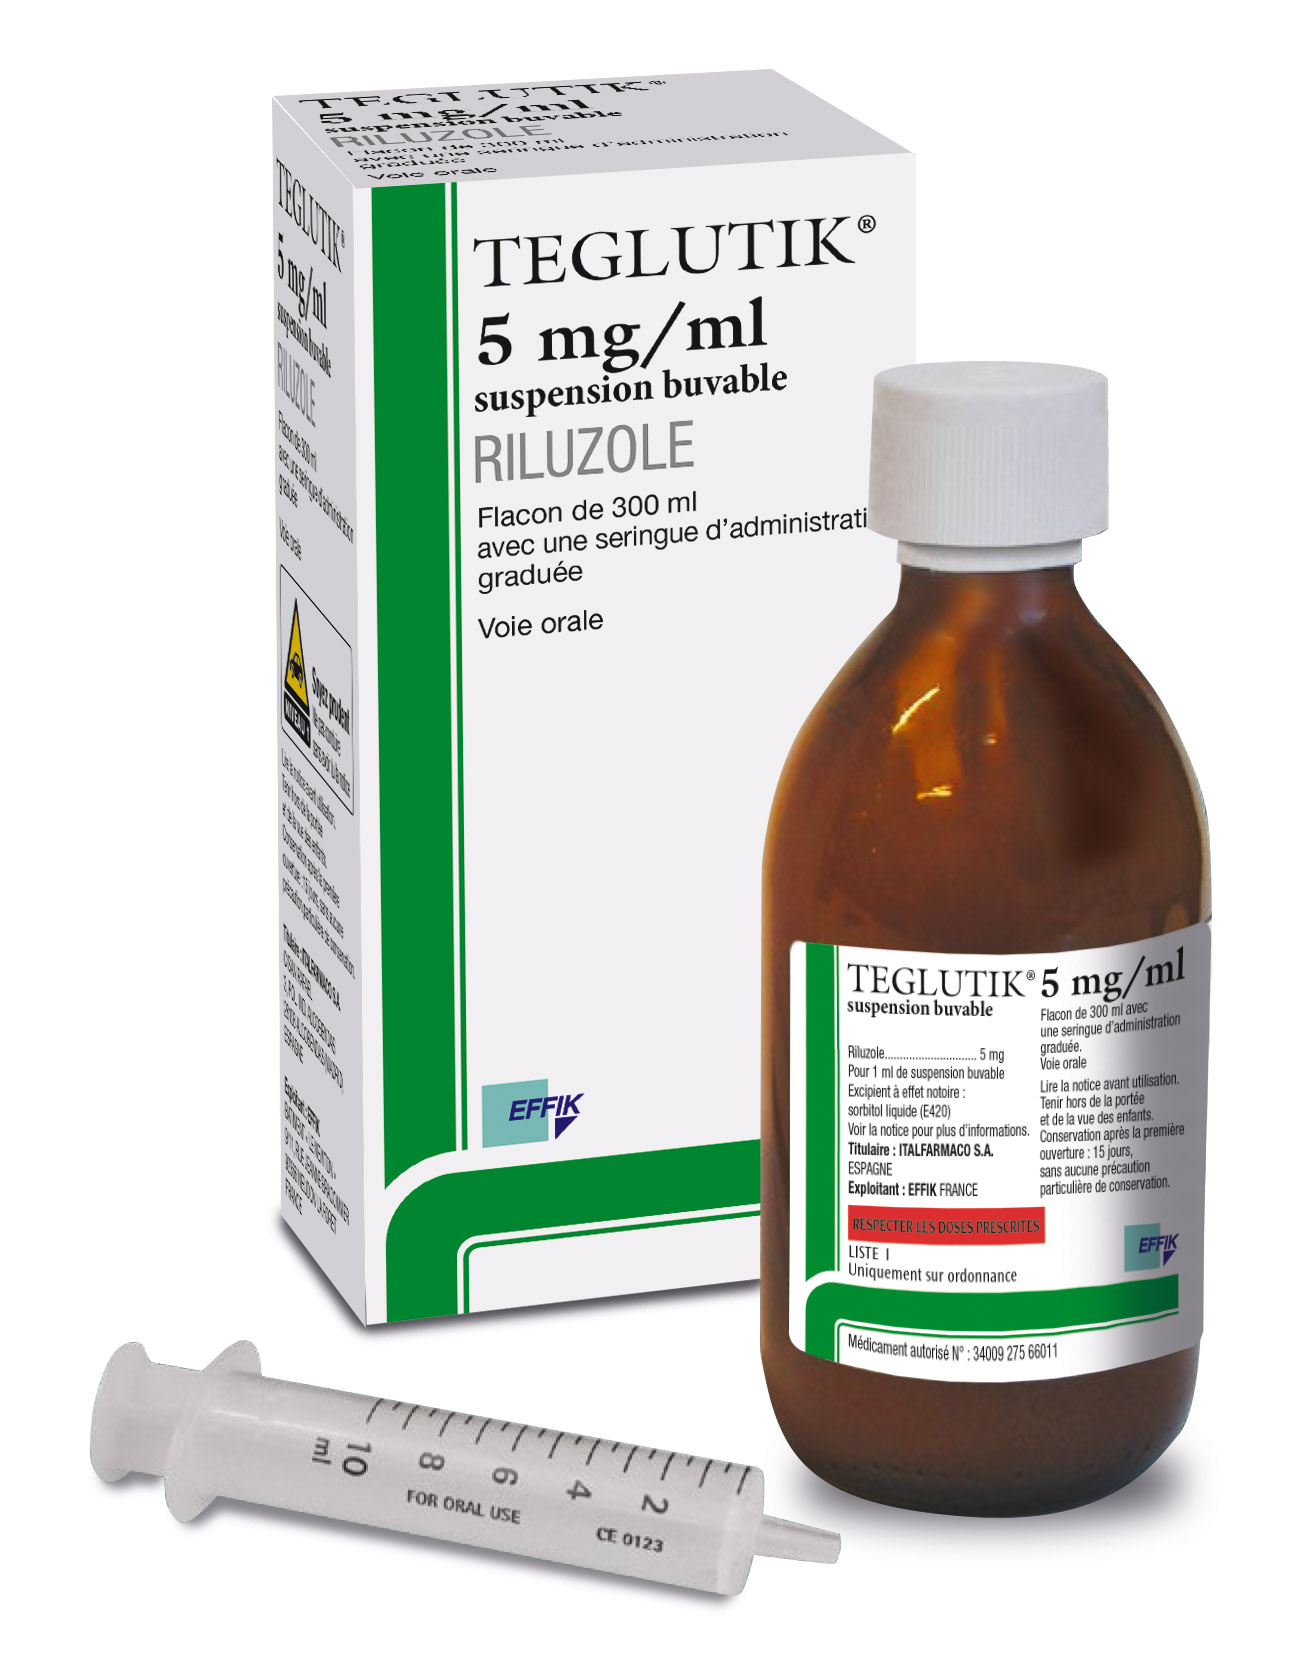 Image TEGLUTIK 5 mg/ml Susp buv Fl/300ml